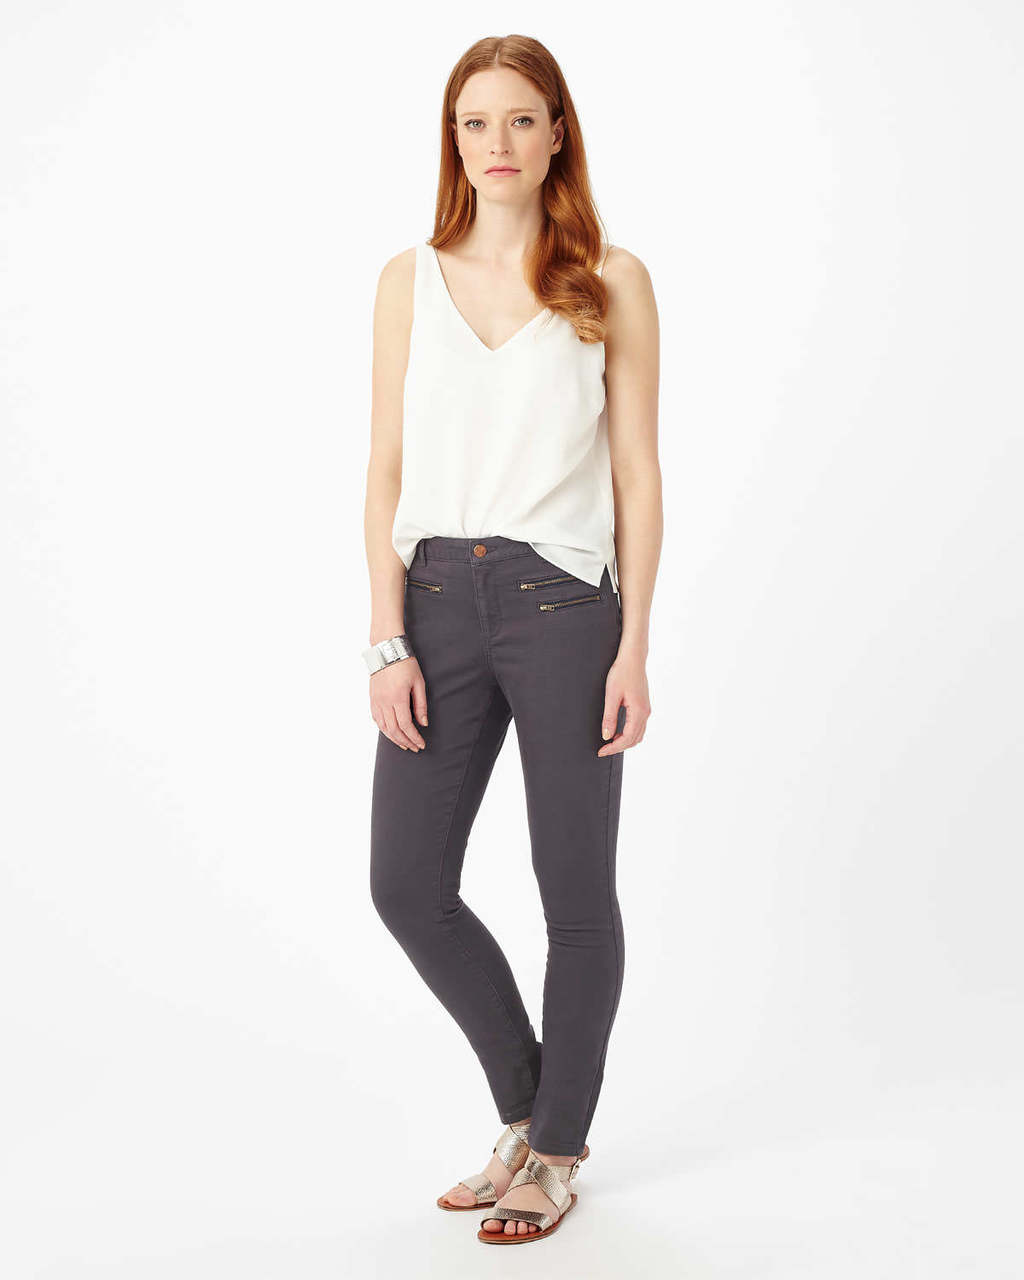 Victoria Triple Zip Jean - style: skinny leg; length: standard; pocket detail: traditional 5 pocket; waist: mid/regular rise; predominant colour: charcoal; occasions: casual; fibres: cotton - stretch; texture group: denim; pattern type: fabric; pattern: patterned/print; season: s/s 2016